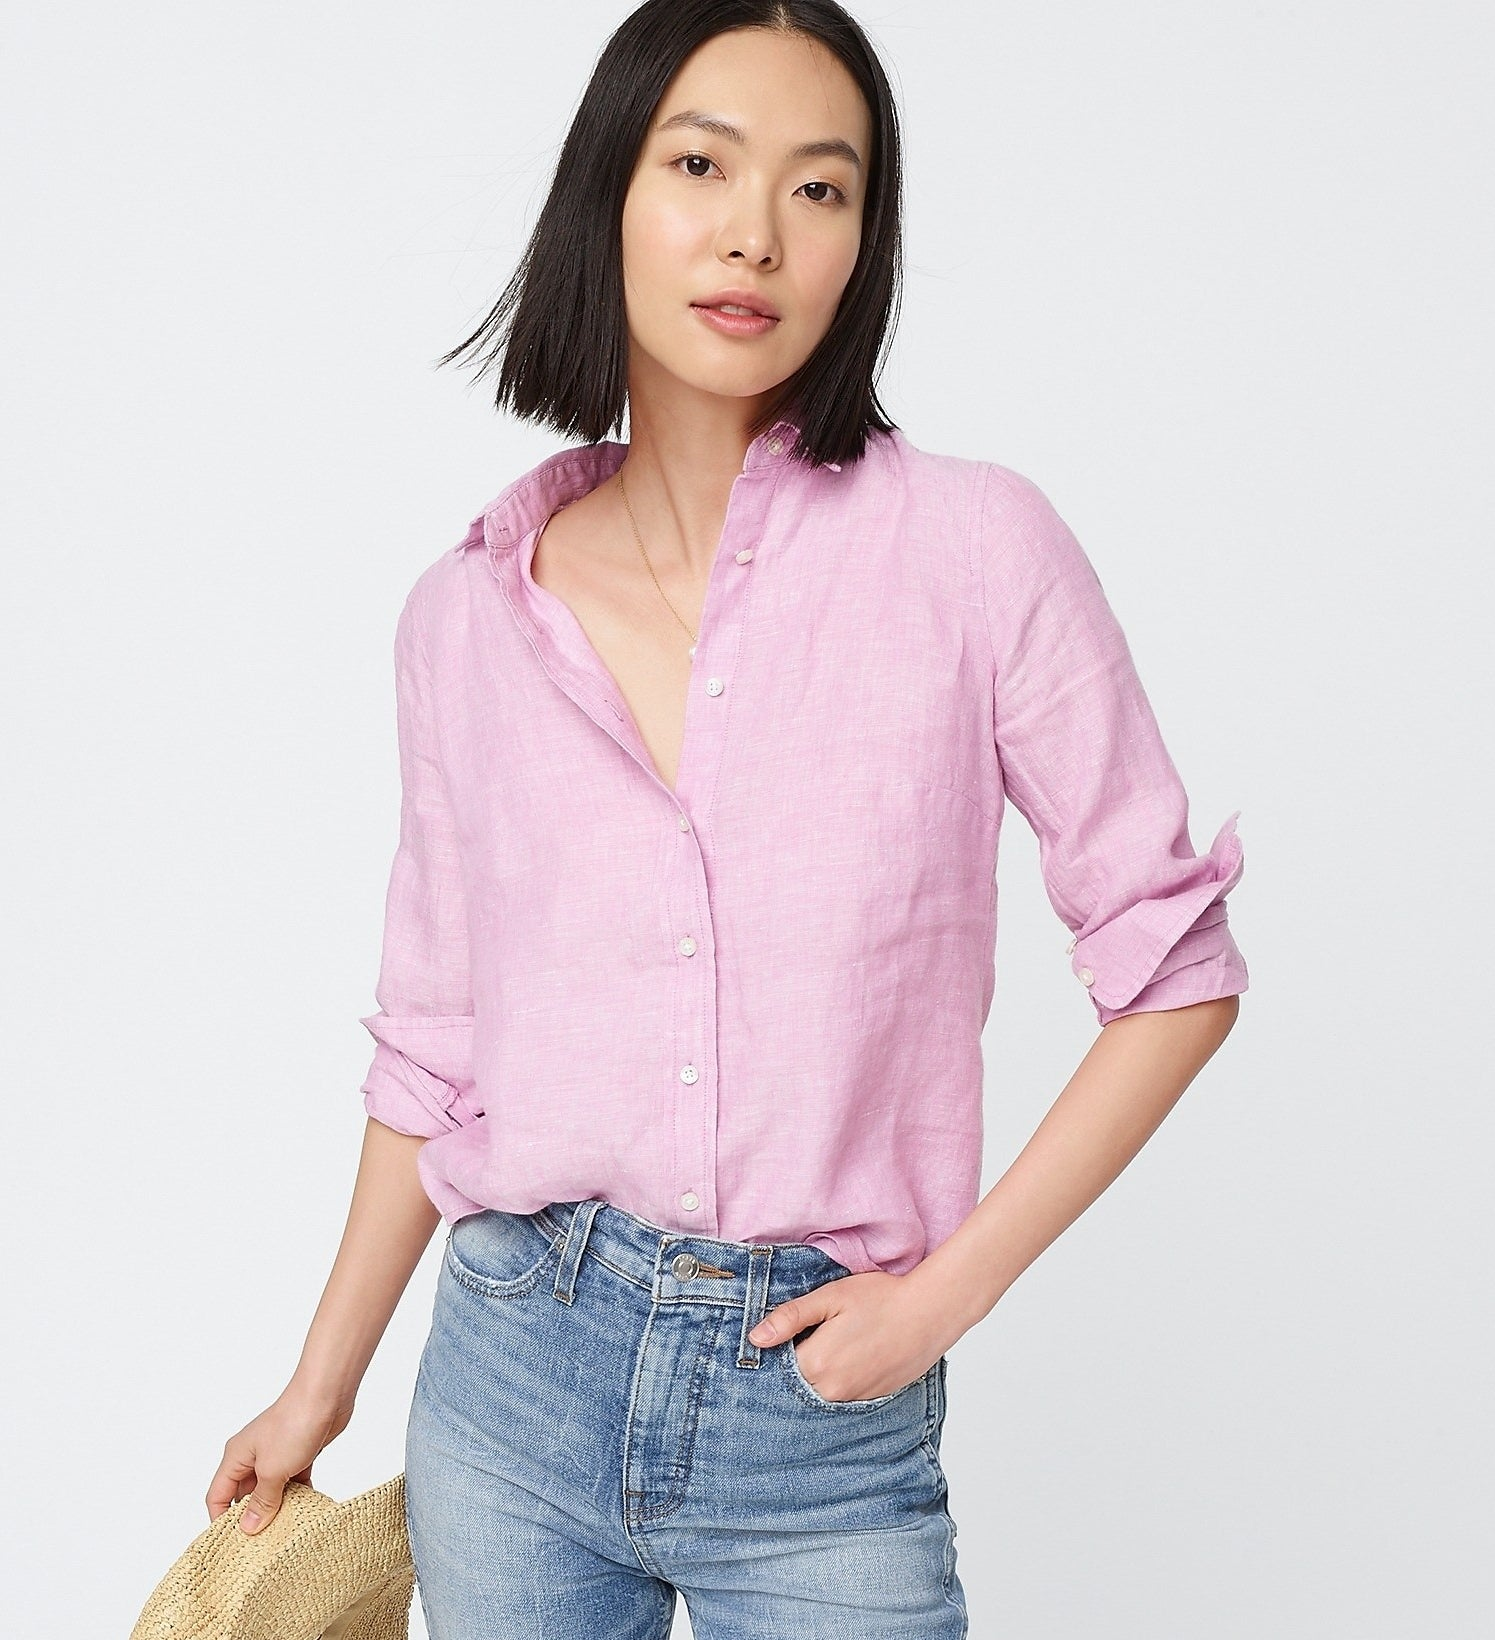 model in pink button up shirt